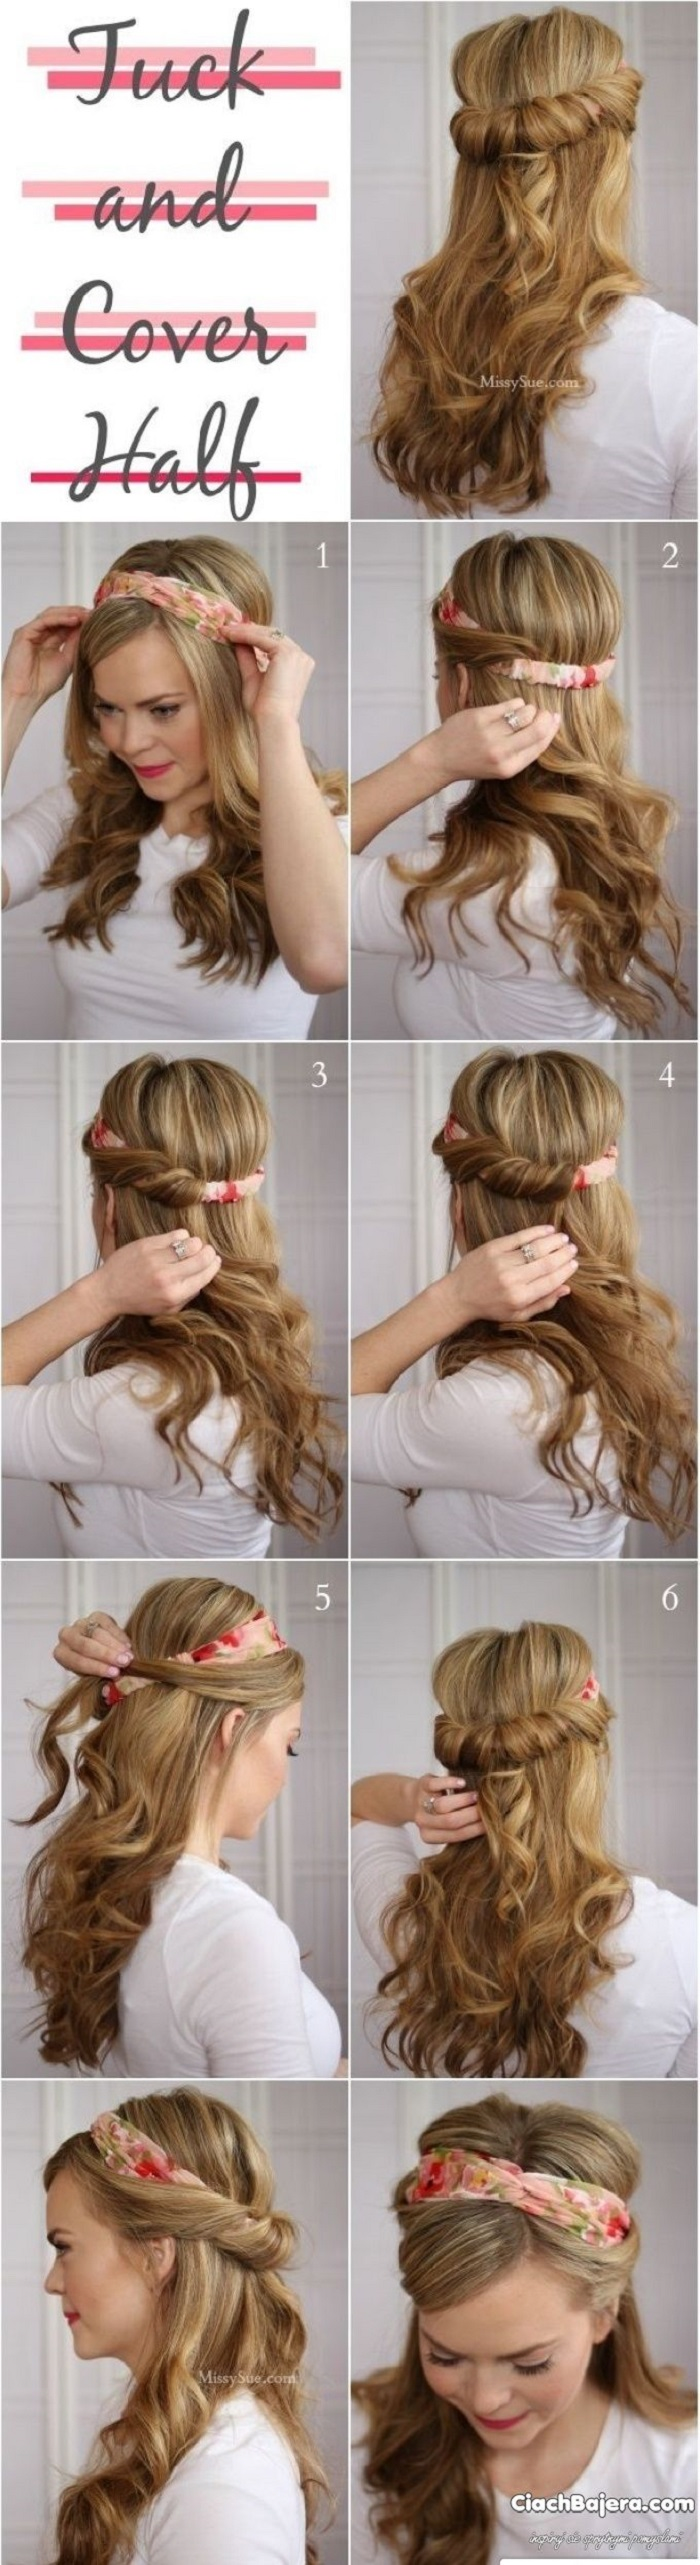 AD-Lazy-Gir-Hairstyling-Hacks-07